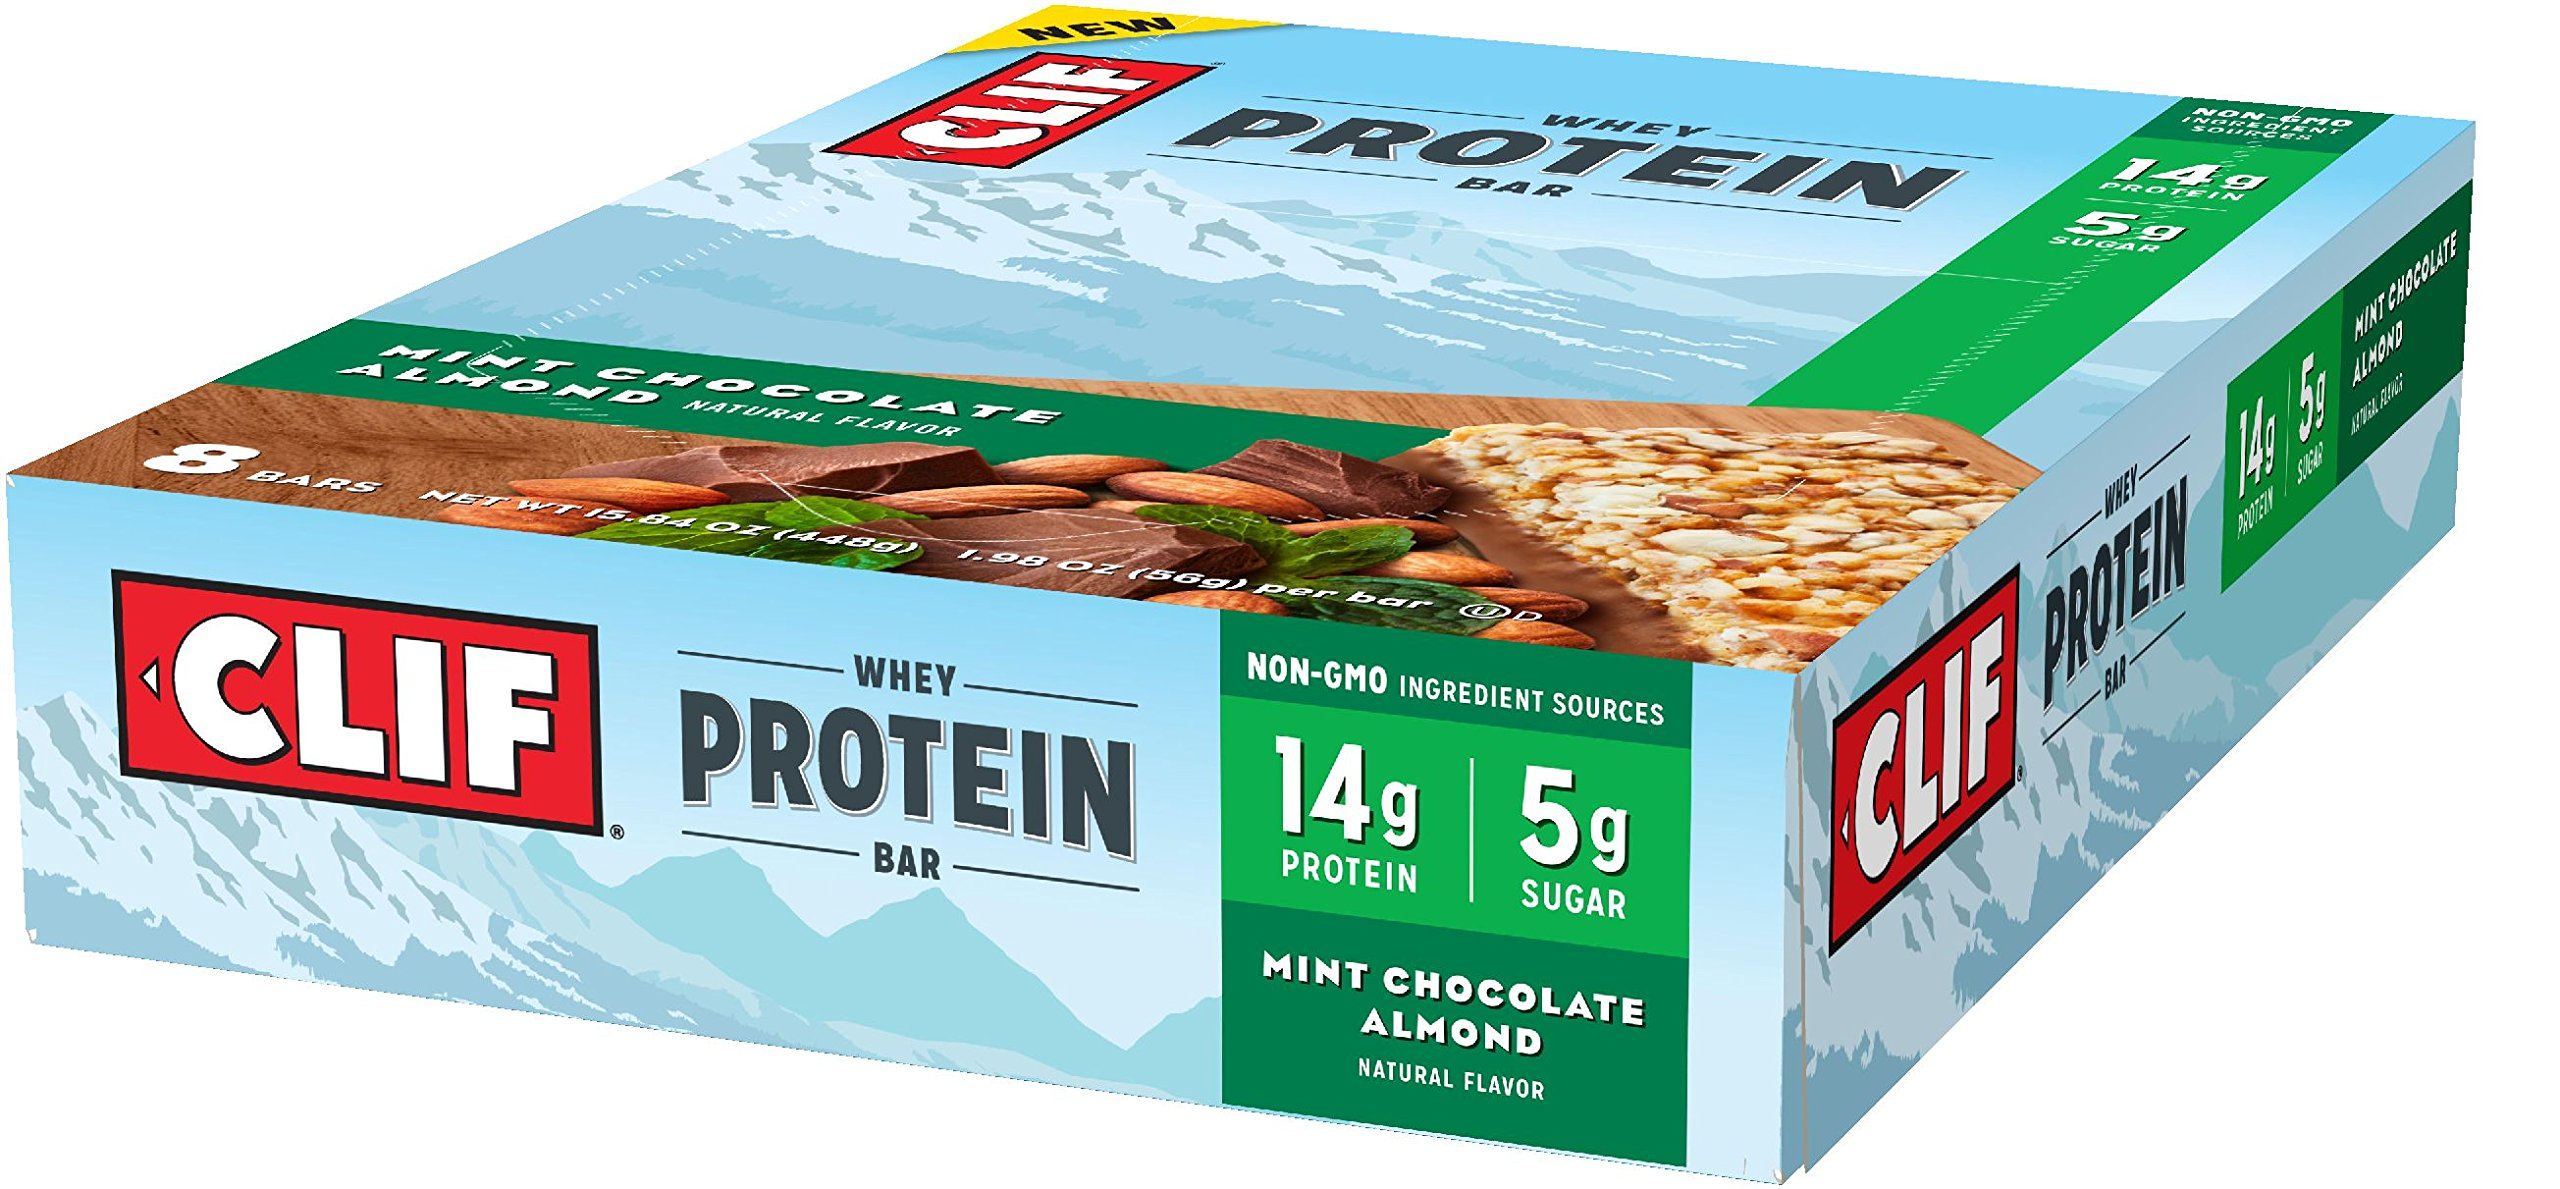 CLIF Whey Protein - Snack Bar - Mint Chocolate Almond - (1.98 Ounce Complete Protein Bar, 8 Count)